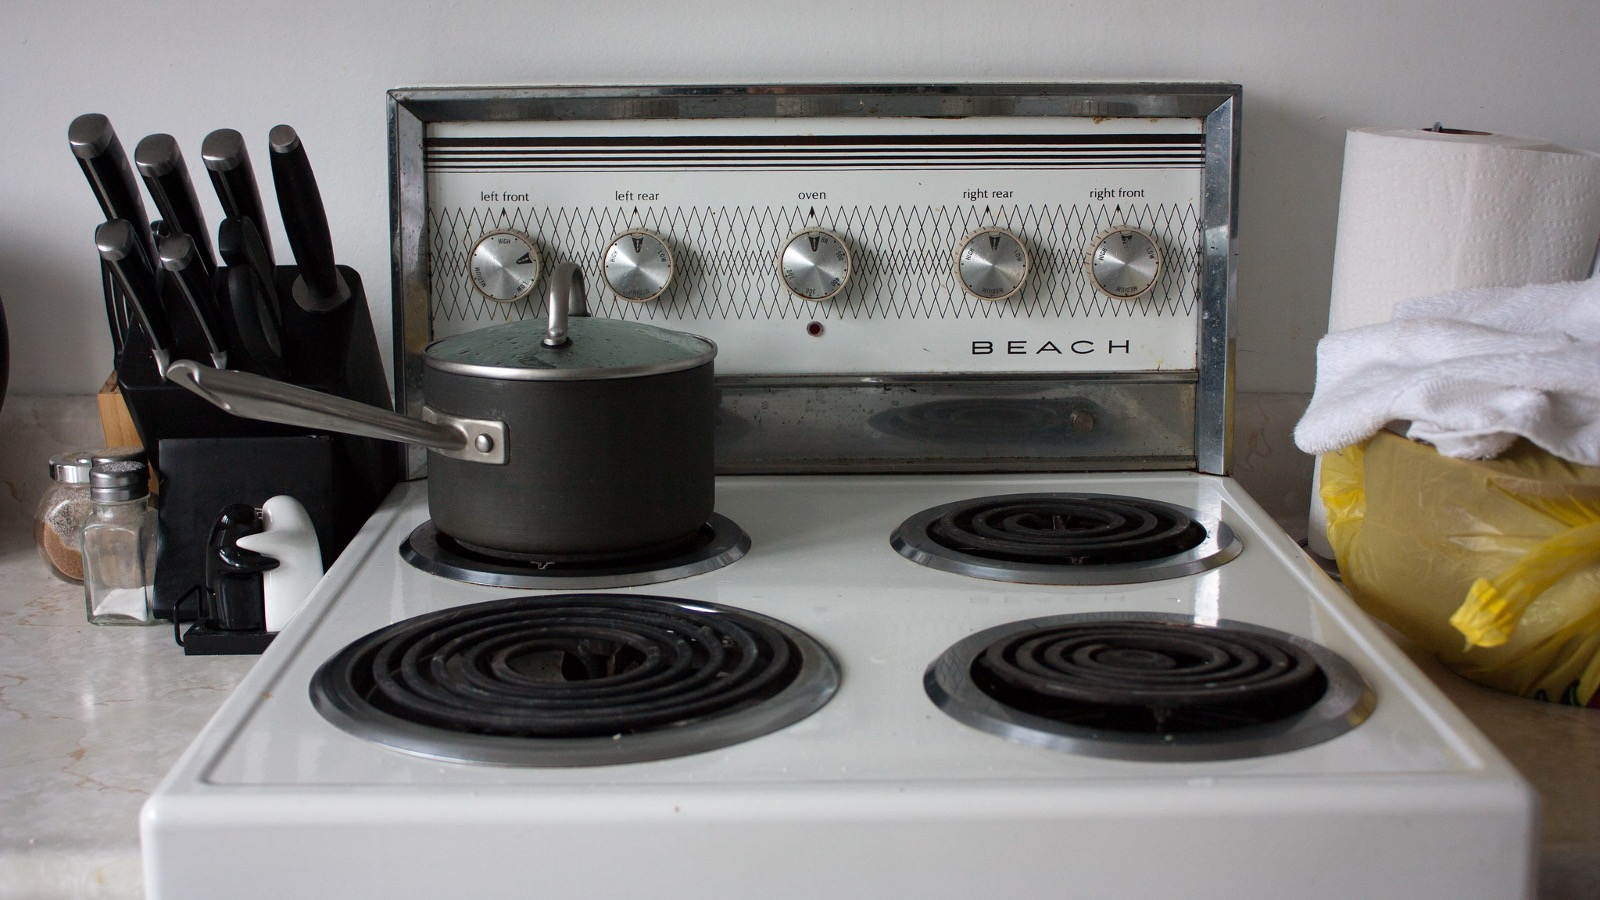 stove with pot of water